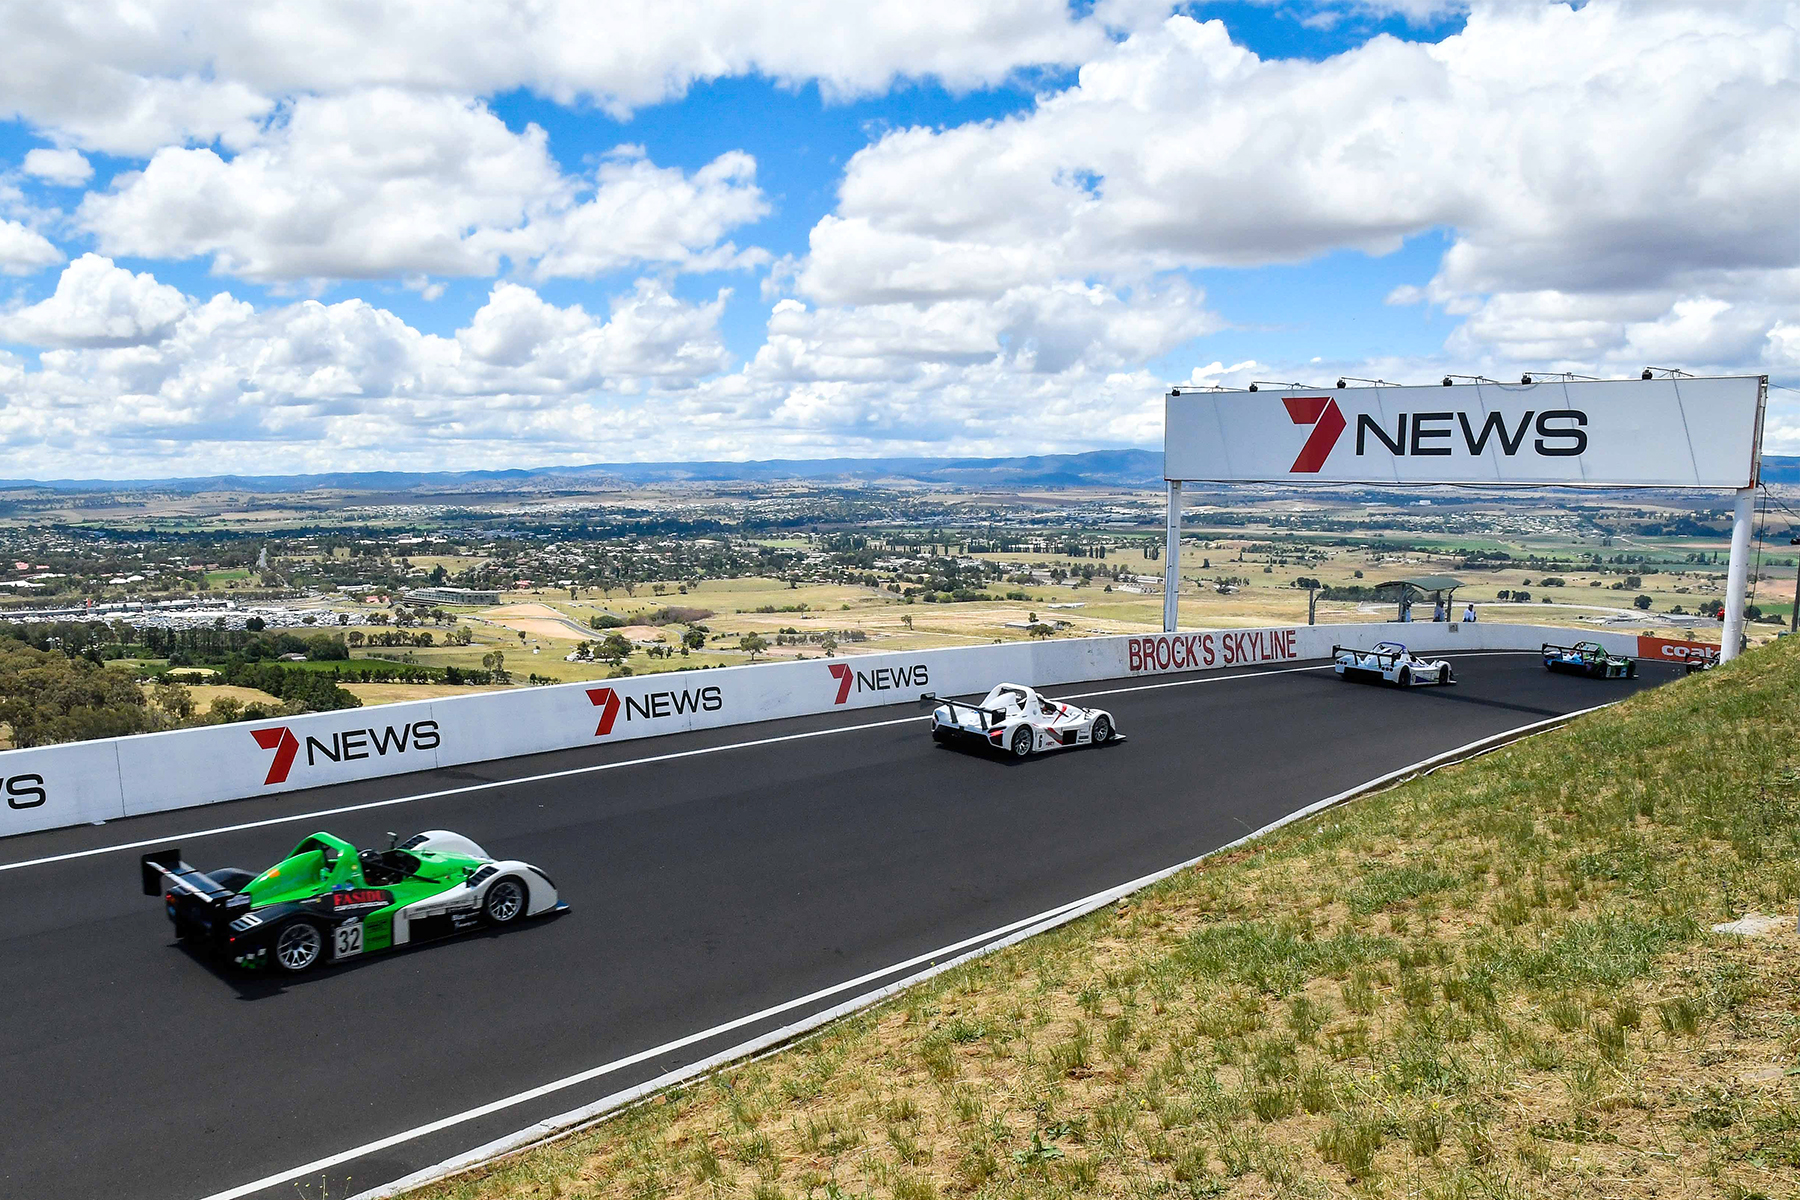 Action from Race 2 at the Radical Australia Cup at Mount Panorama Bathurst